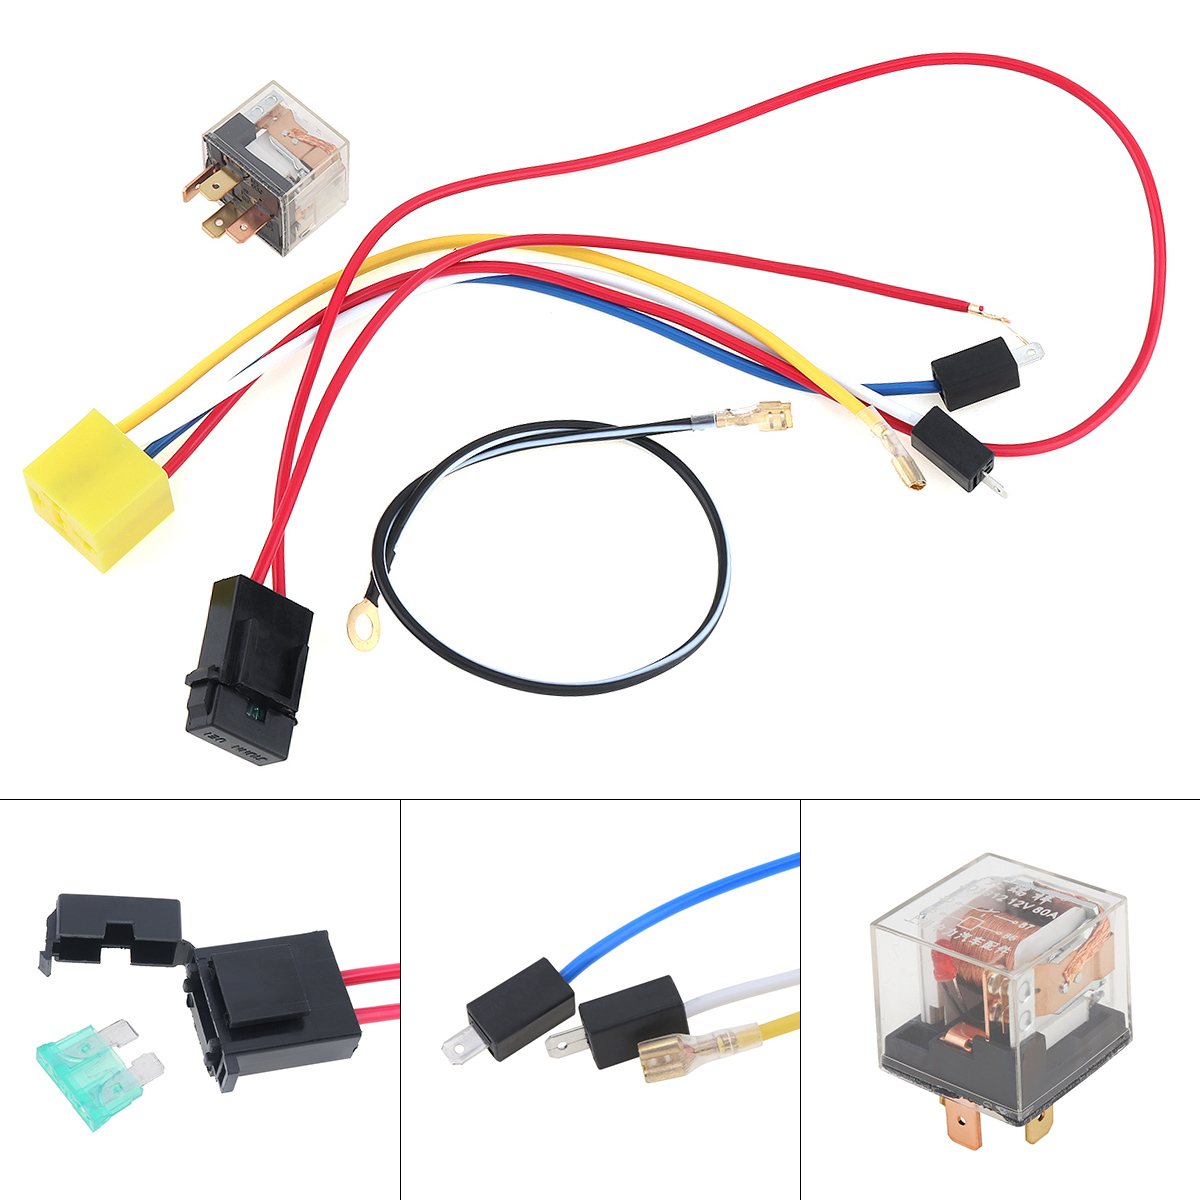 top 10 kabel relay klakson list and get free shipping - i8hid5fe Wiring Relay Klakson on